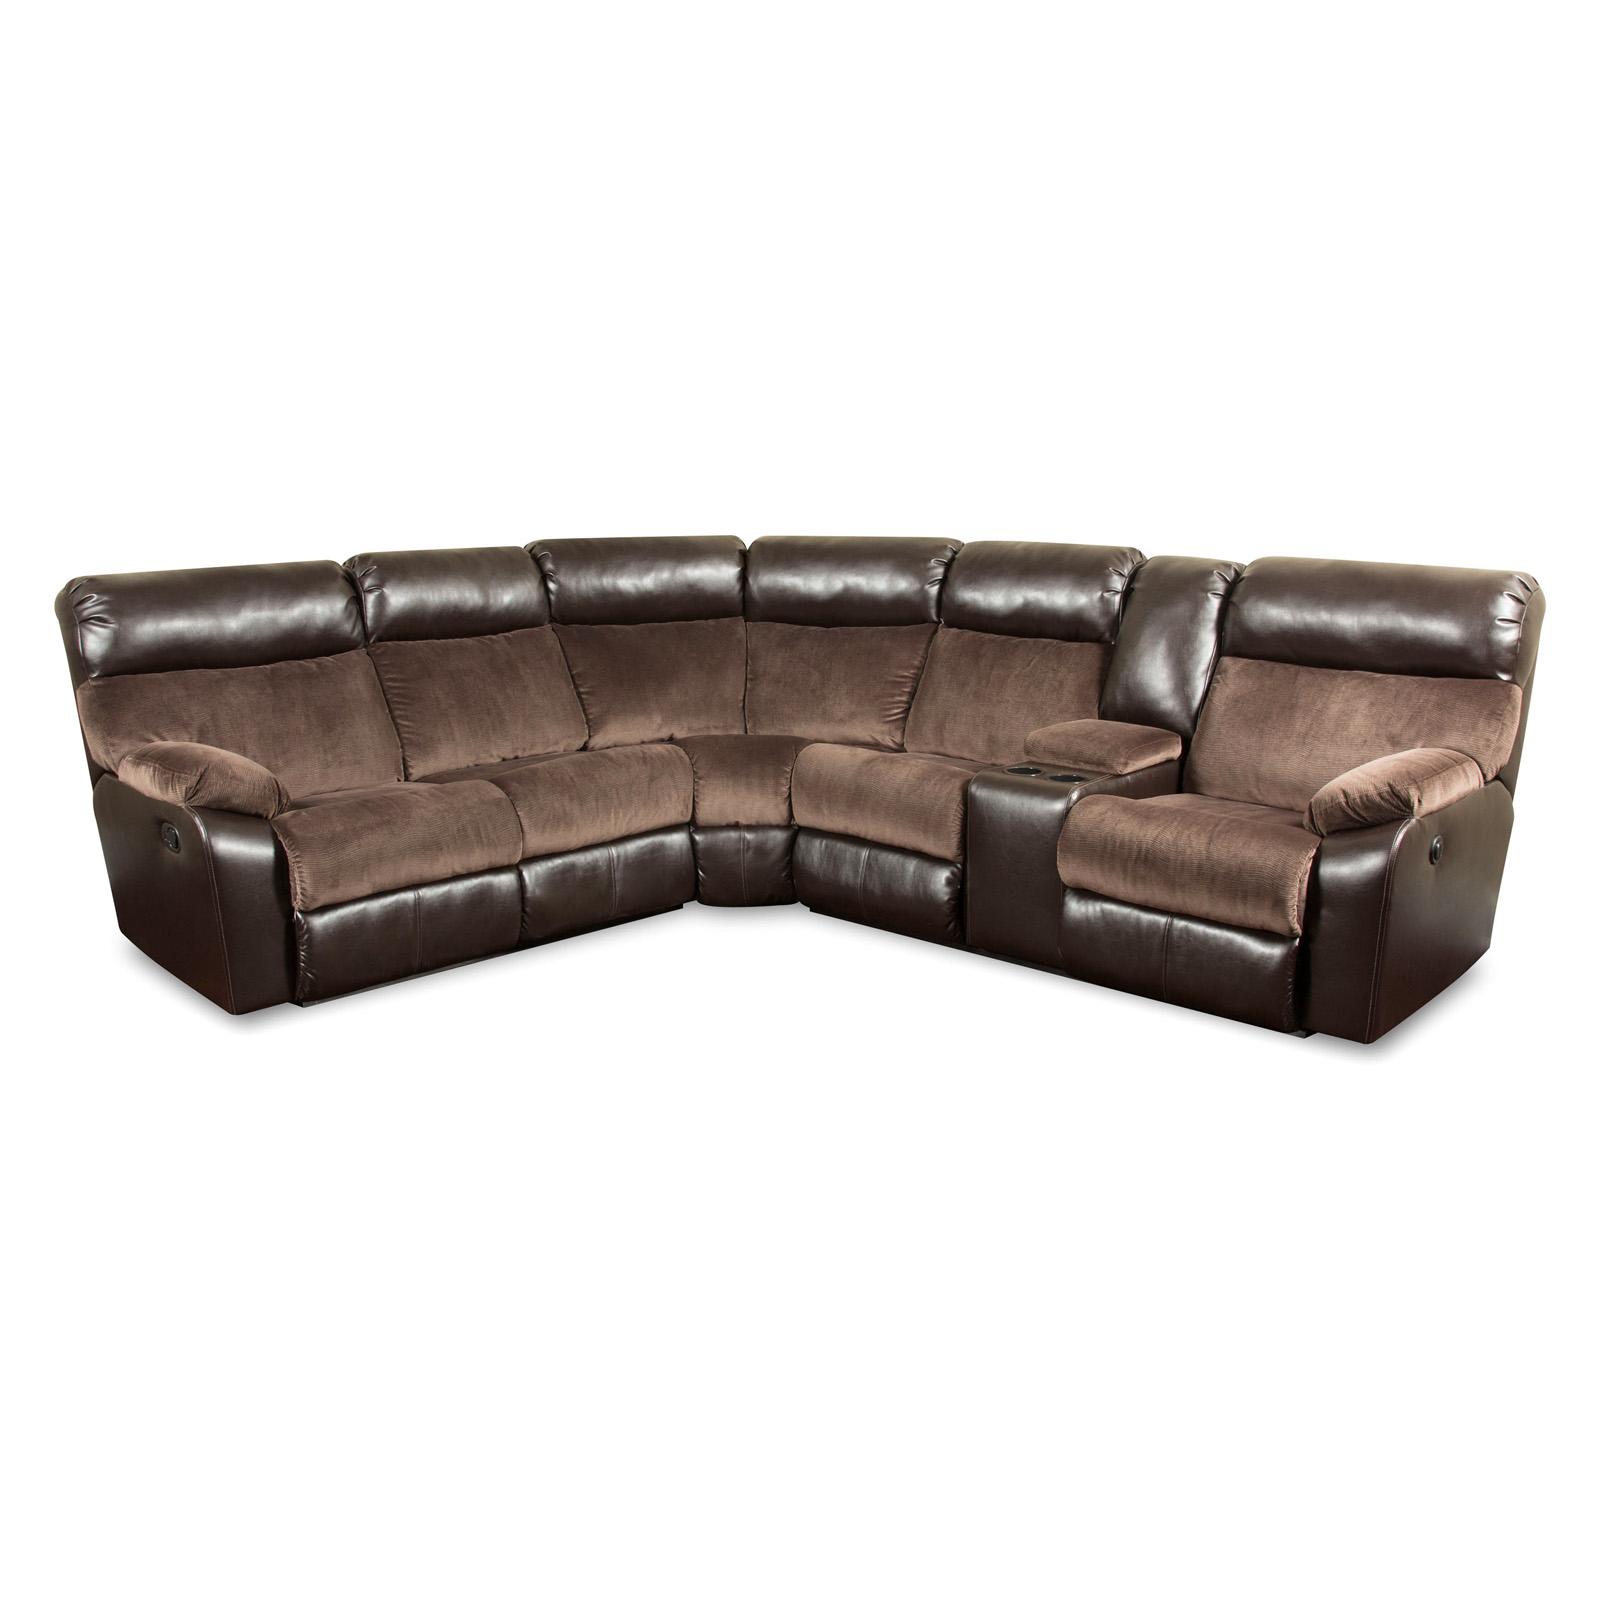 simmons manhattan sleeper sofa tantra di malaysia upholstery beautyrest motion sectional